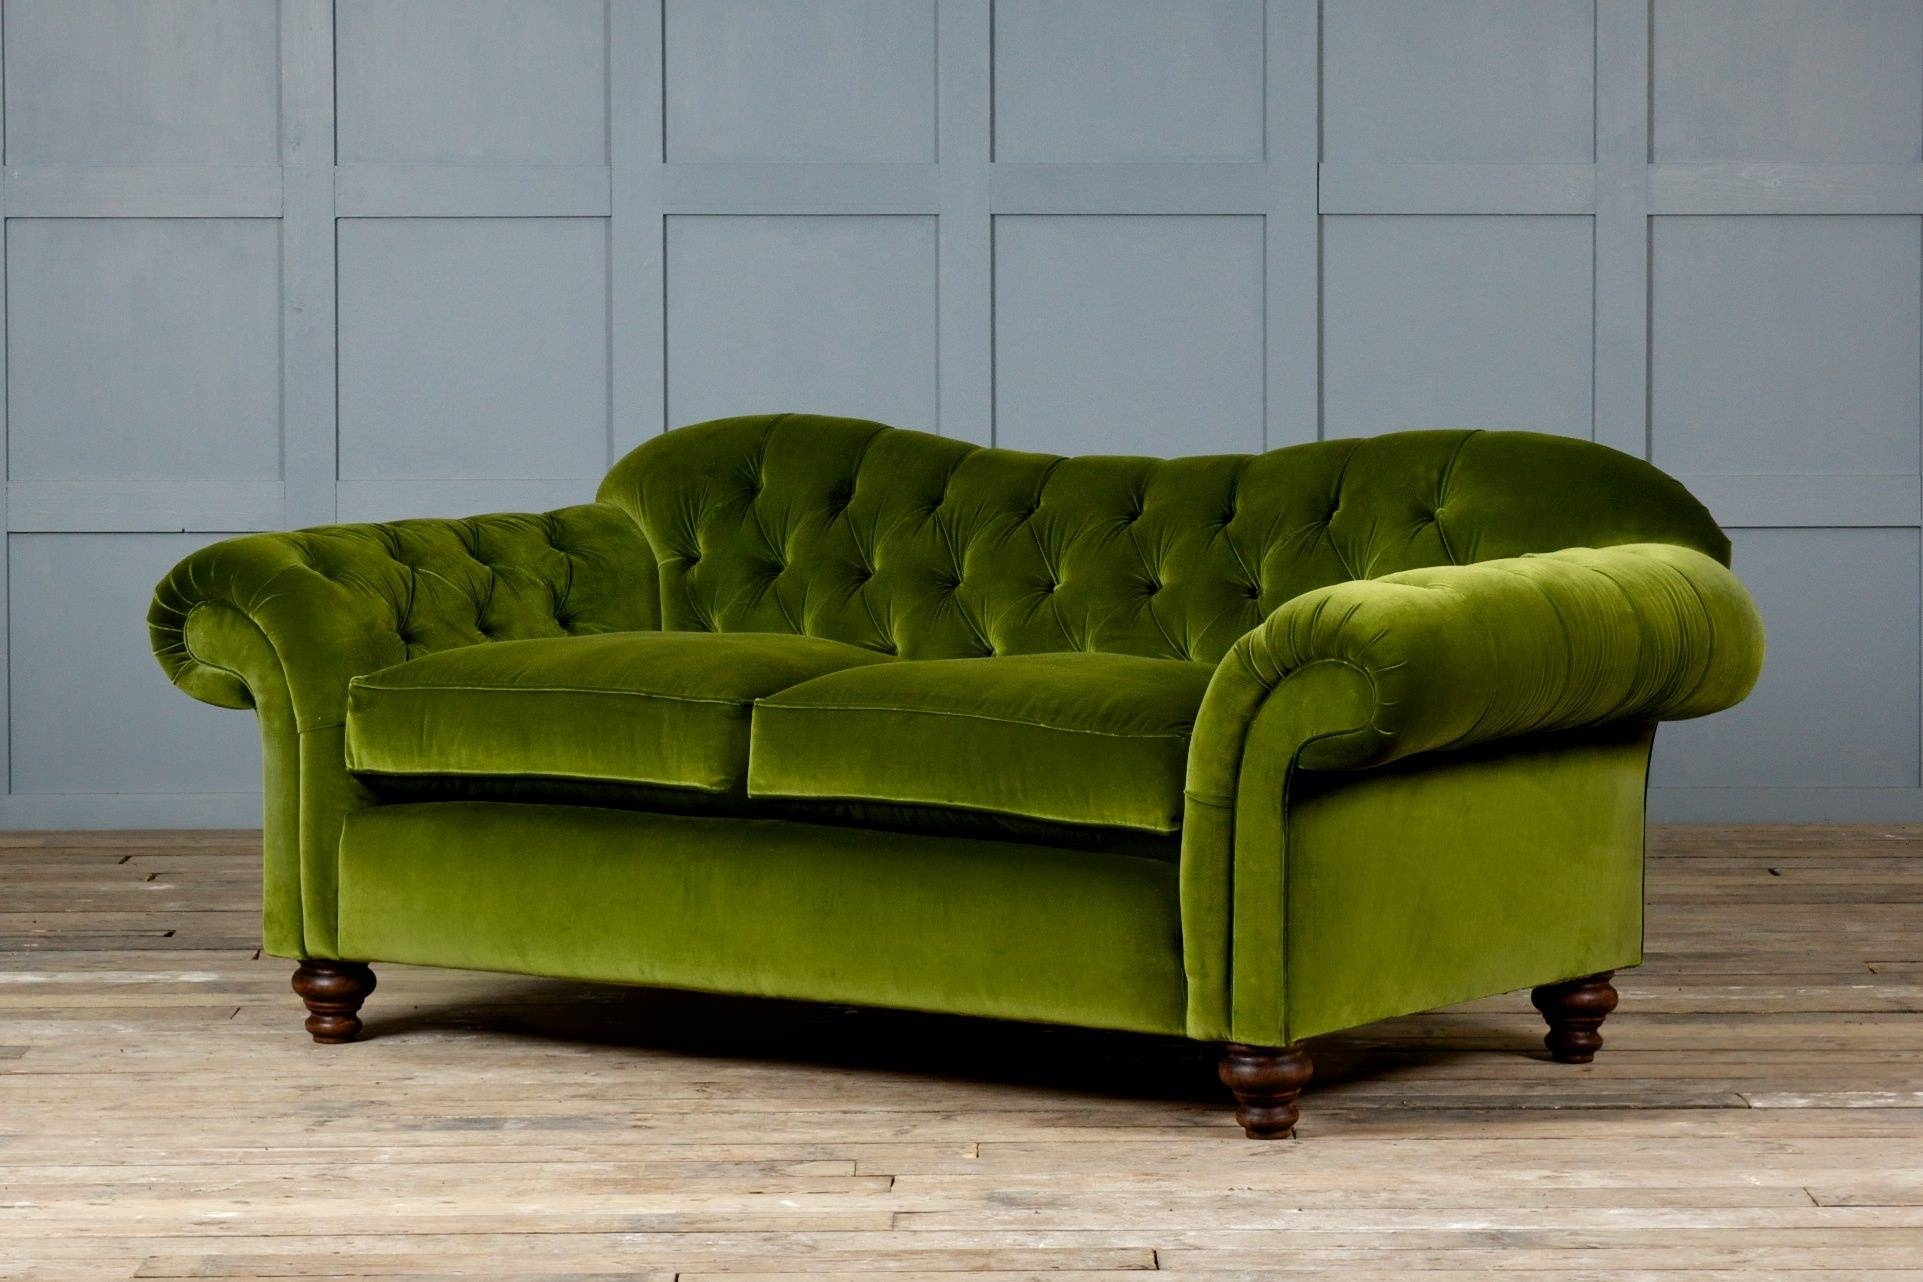 Furniture: Luxury Ava Velvet Tufted Sleeper Sofa For Elegant within Ava Velvet Tufted Sleeper Sofas (Image 8 of 15)